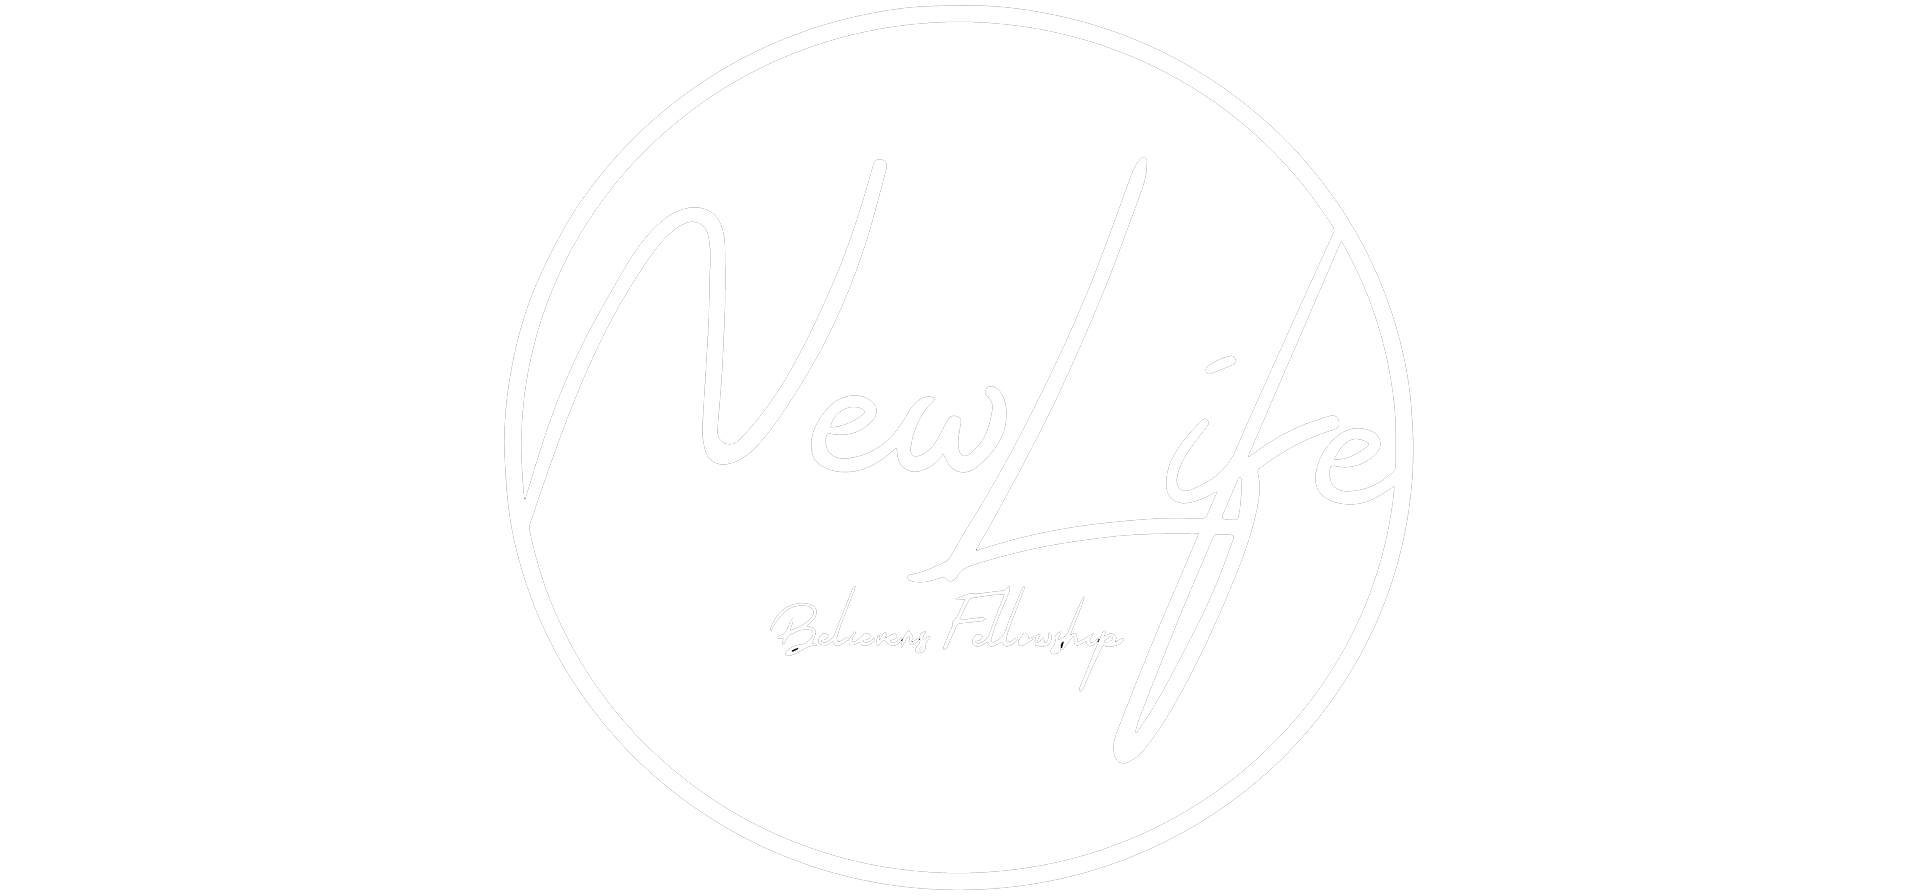 New Life Believers Fellowship